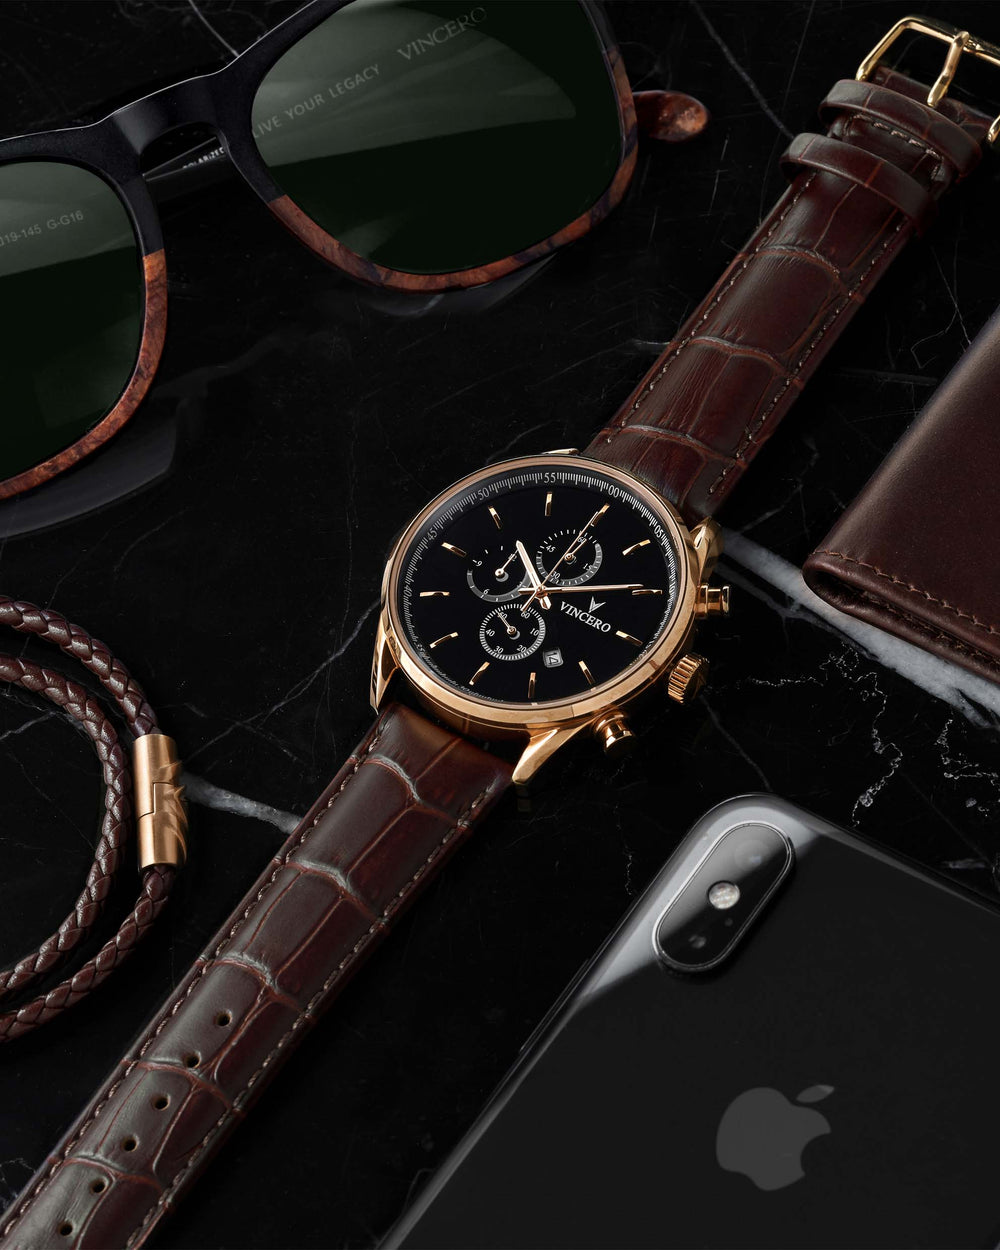 Chrono S Brown Croc Italian Leather Strap Black Watch Face Rose Gold Case Clasp Rose Gold Accents